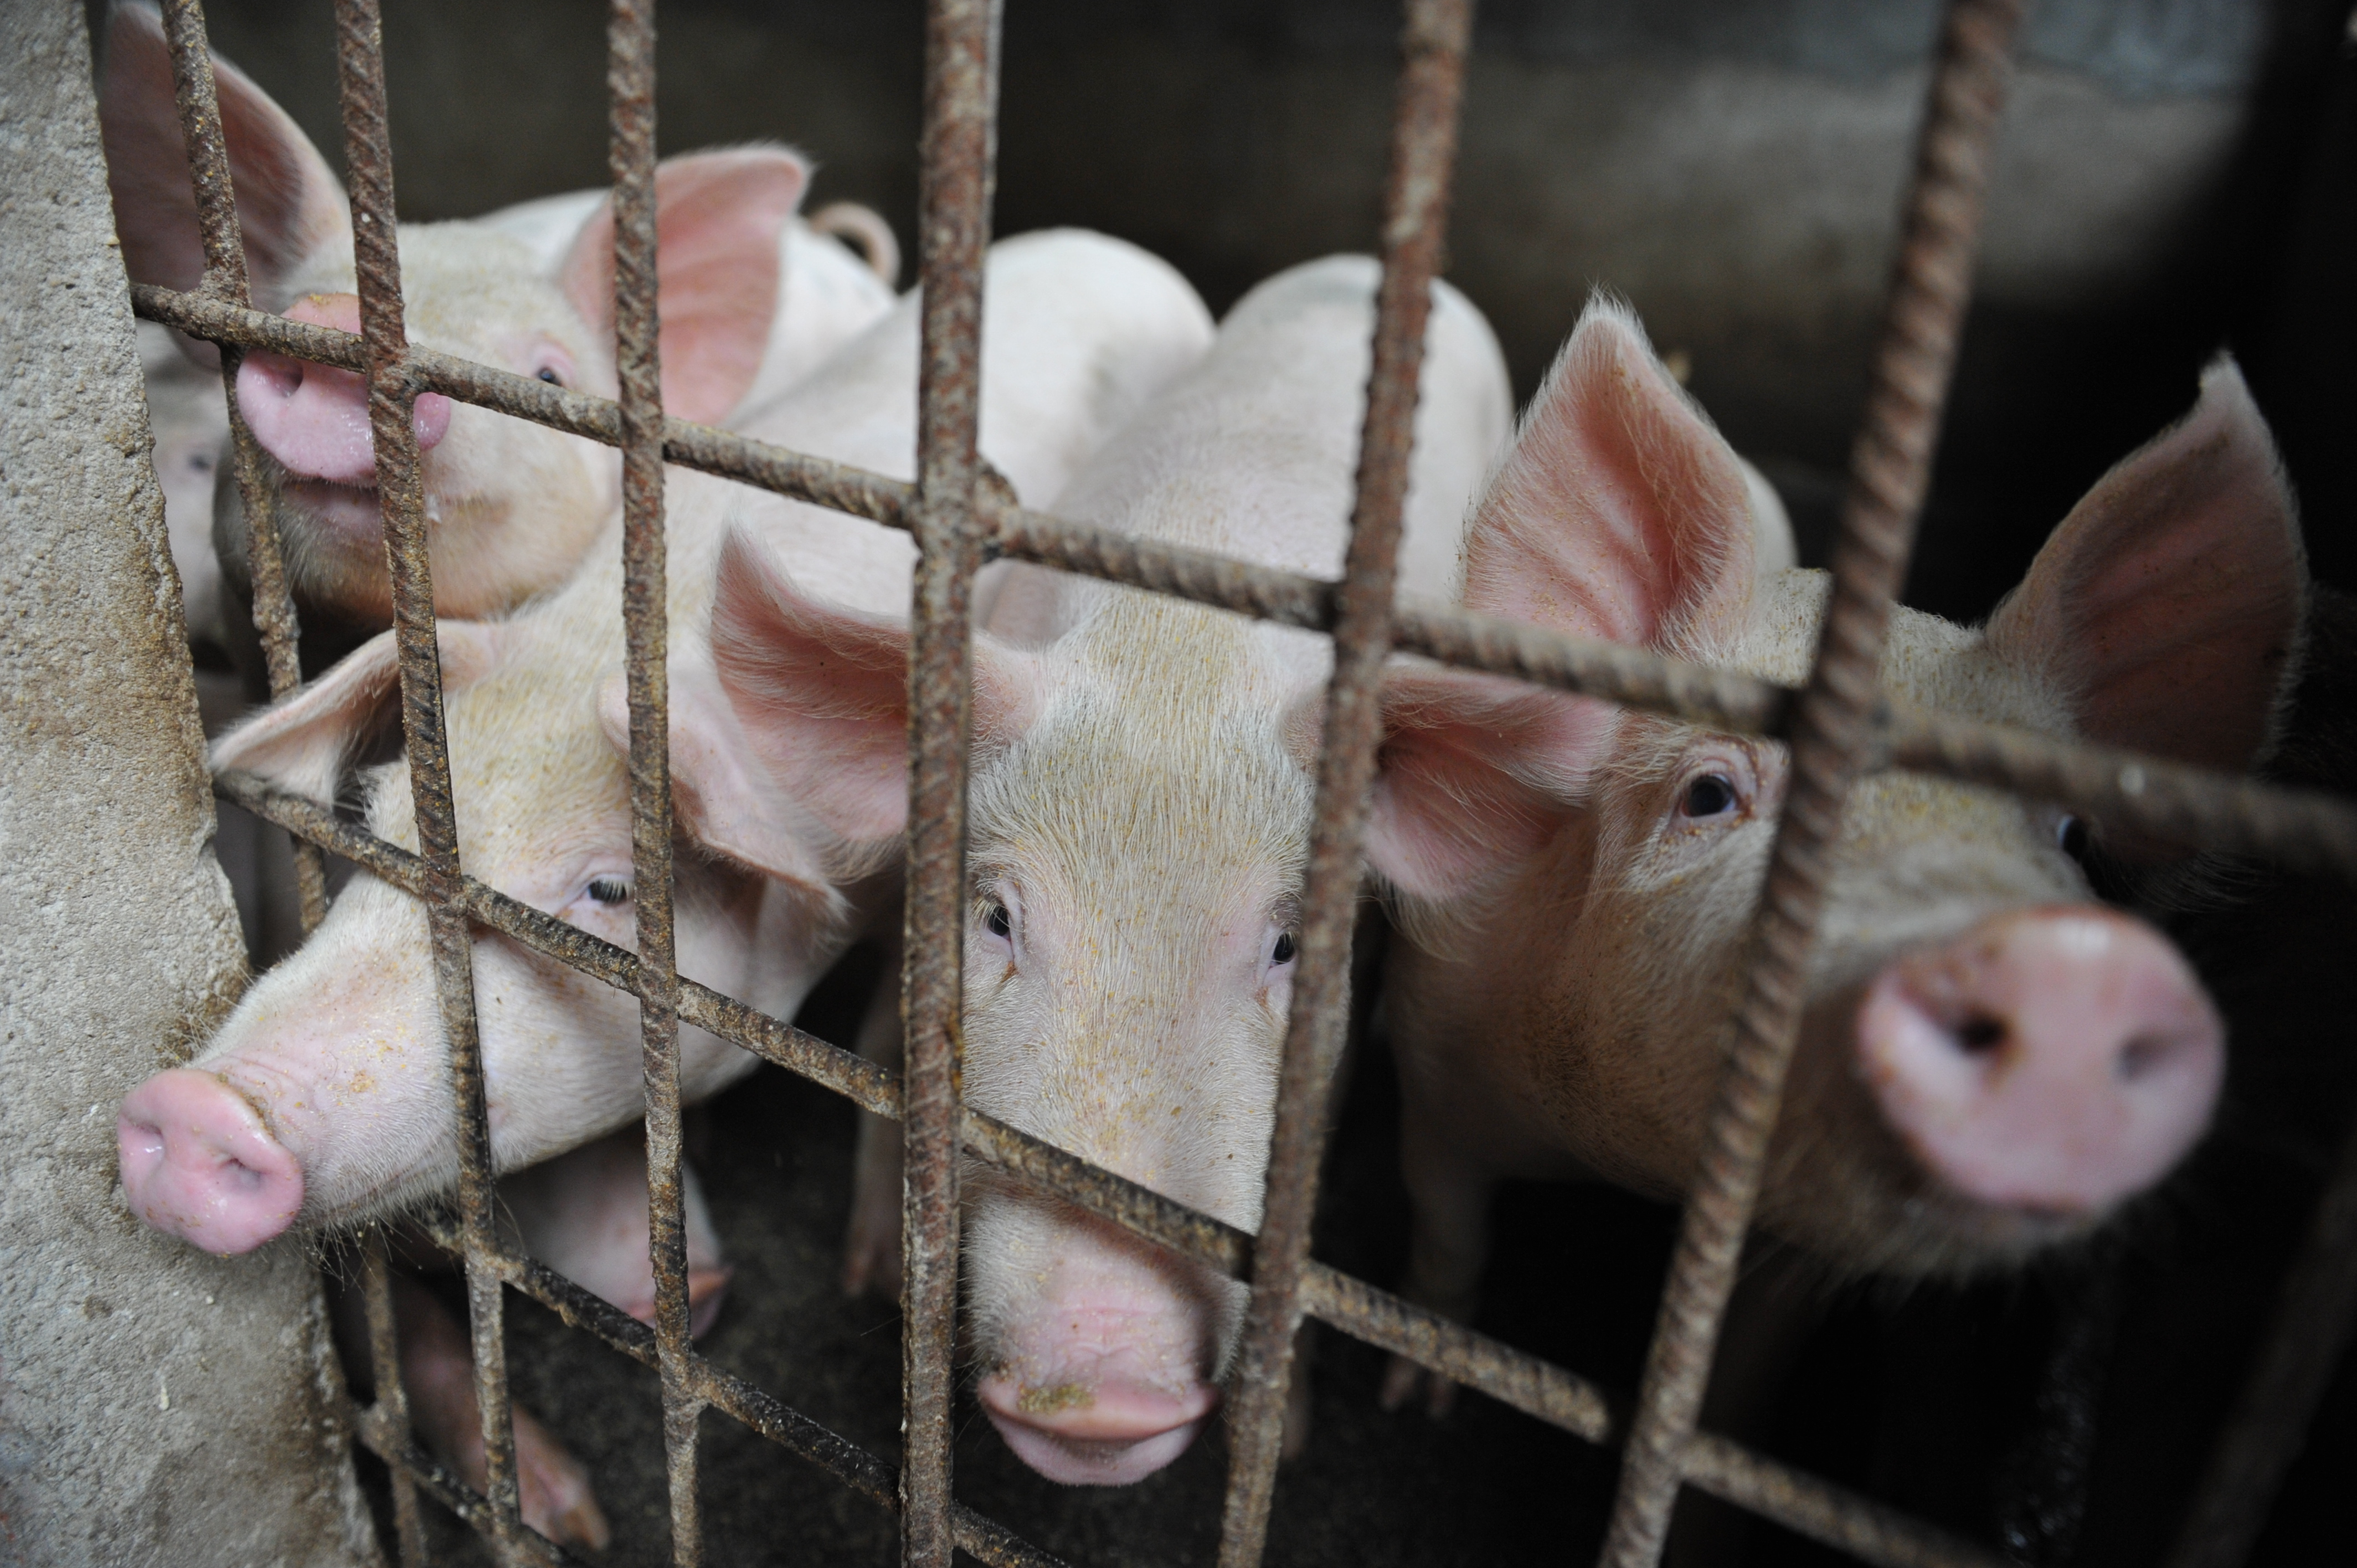 Pigs are seen in a hog pen in a village in Linquan county in central China's Anhui province on Aug. 31, 2018.